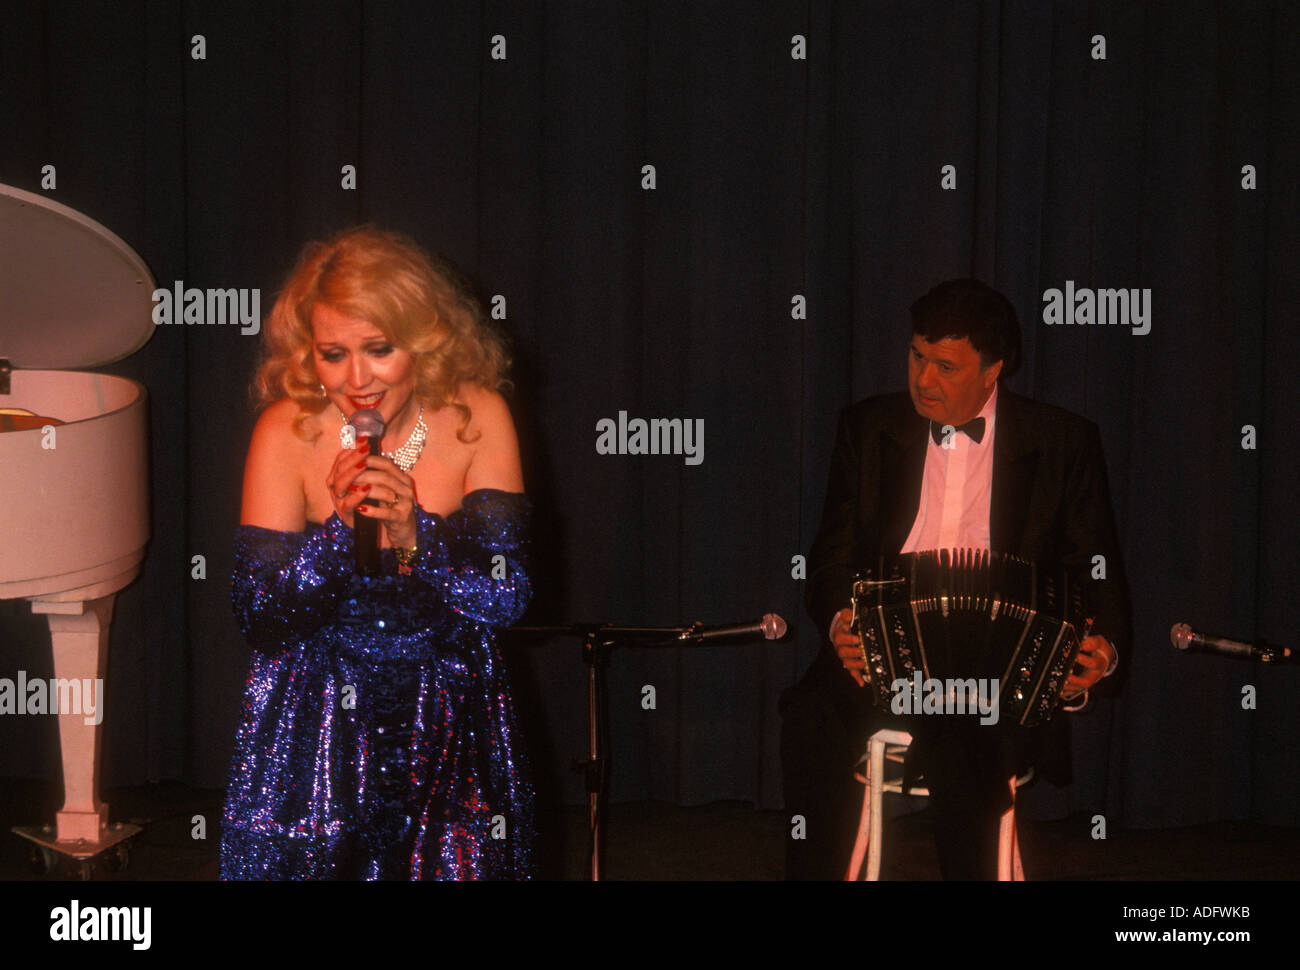 Maria Alexandra singing, Maria Alexandra, singing, singing song, Casa Blanca, Buenos Aires, Buenos Aires Province,Stock Photo